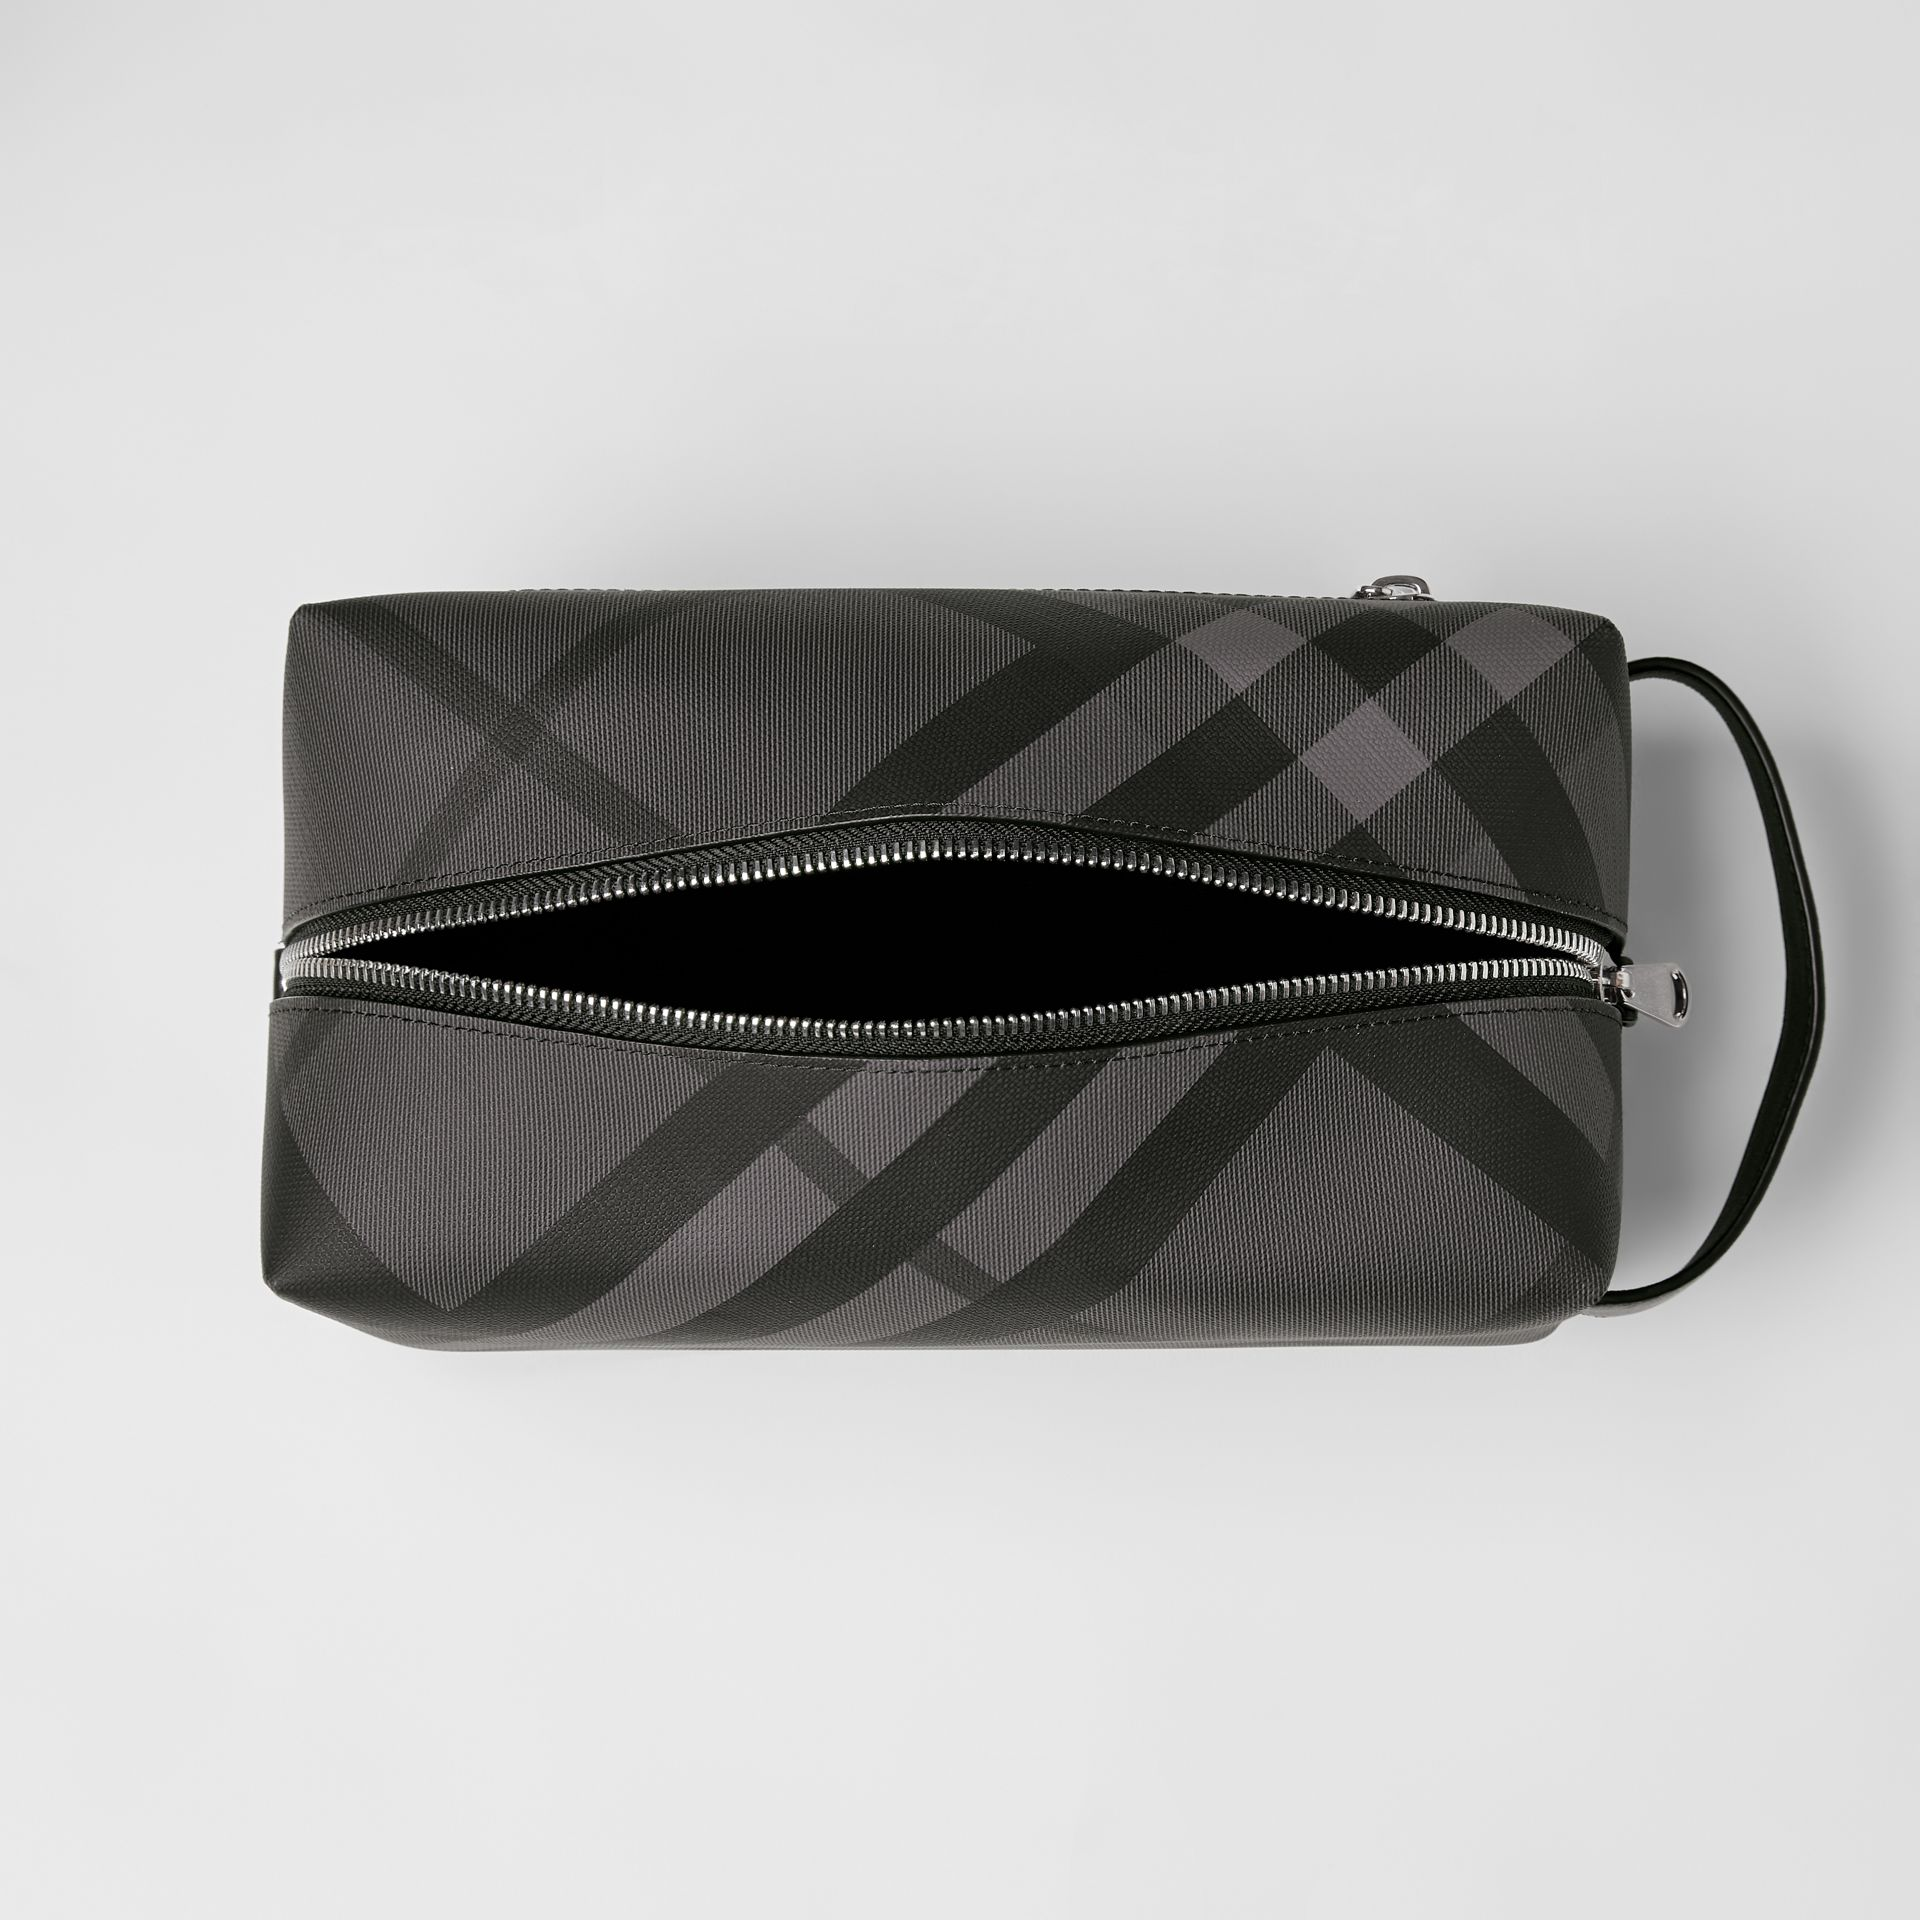 Pochette en cuir à motif London check (Anthracite/noir) - Homme | Burberry Canada - photo de la galerie 5